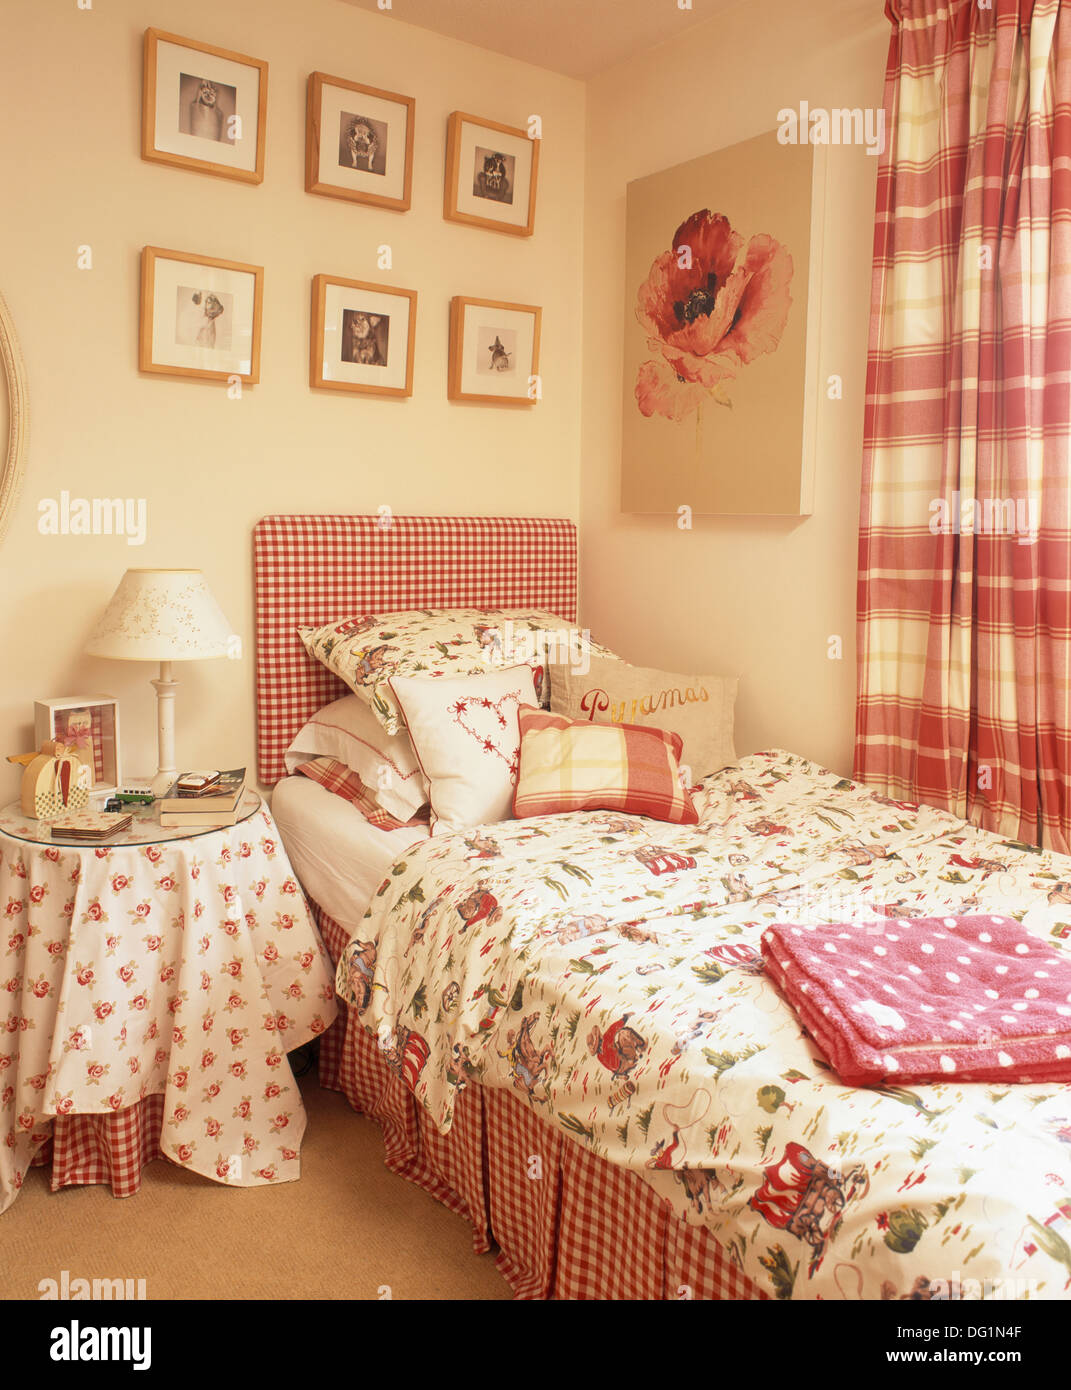 Cath Kidston Cowboy duvet cover and pillow in teenager\'s bedroom ...